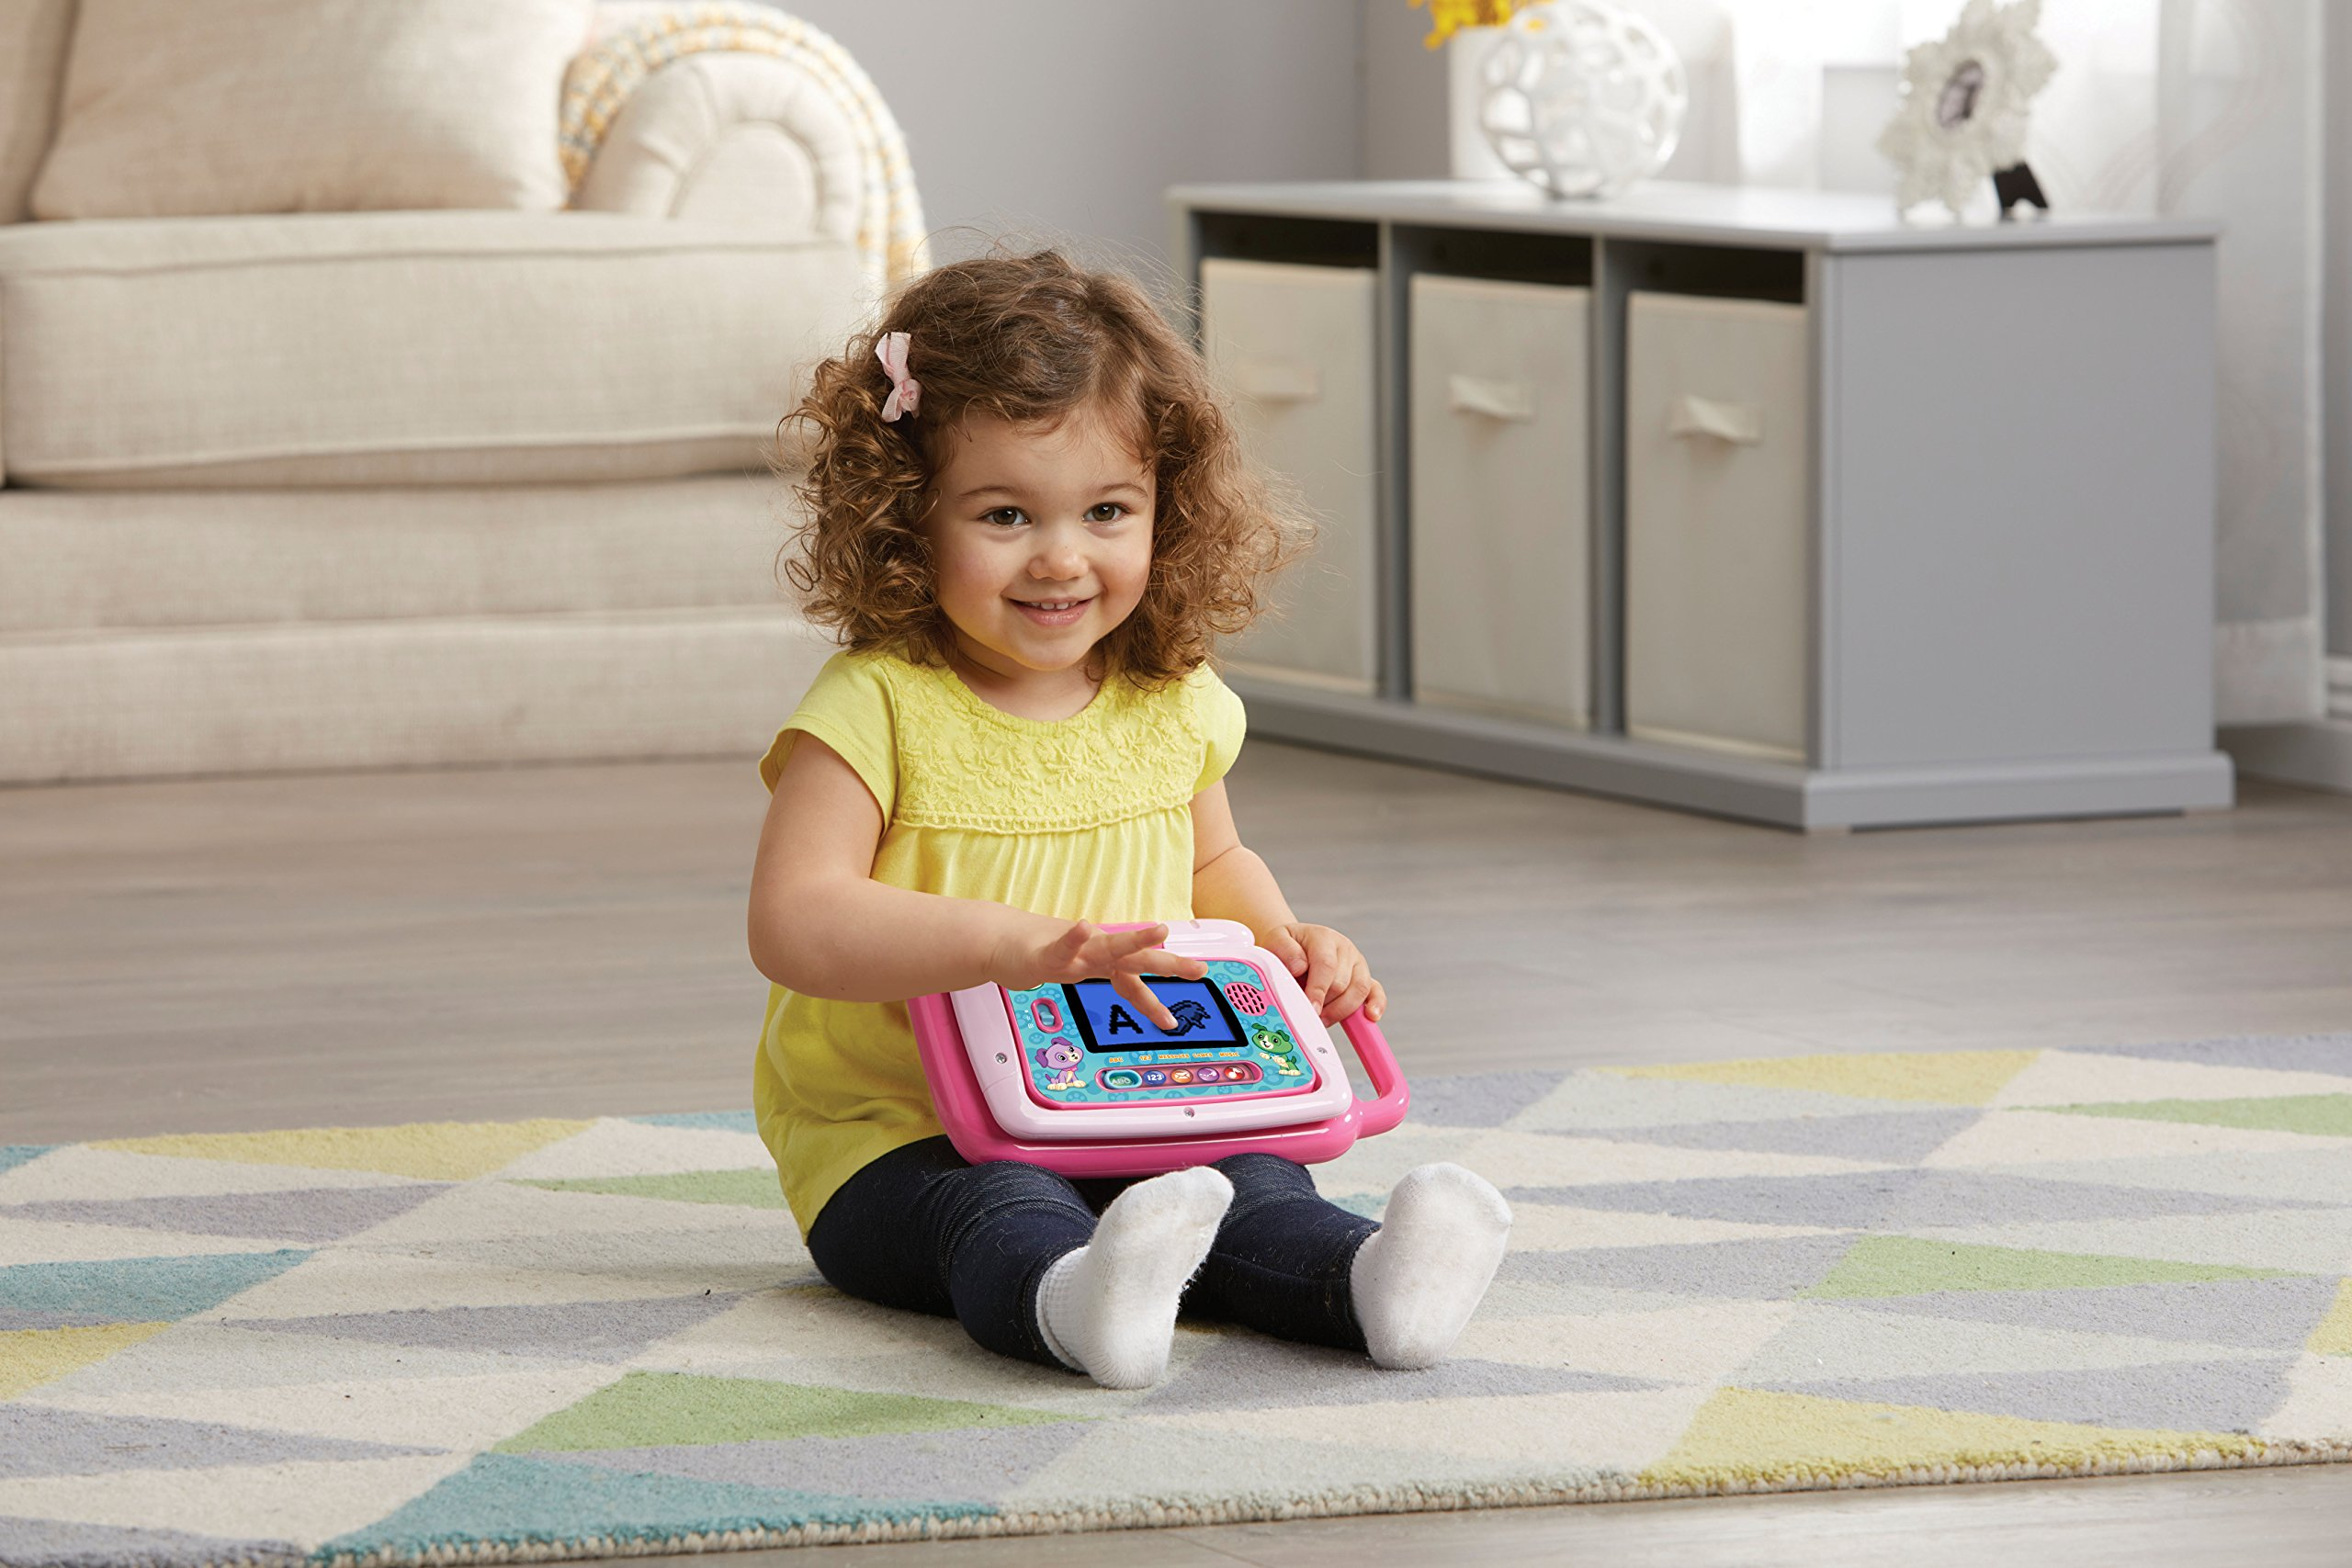 LeapFrog 2-in-1 LeapTop Touch, Pink by LeapFrog (Image #5)